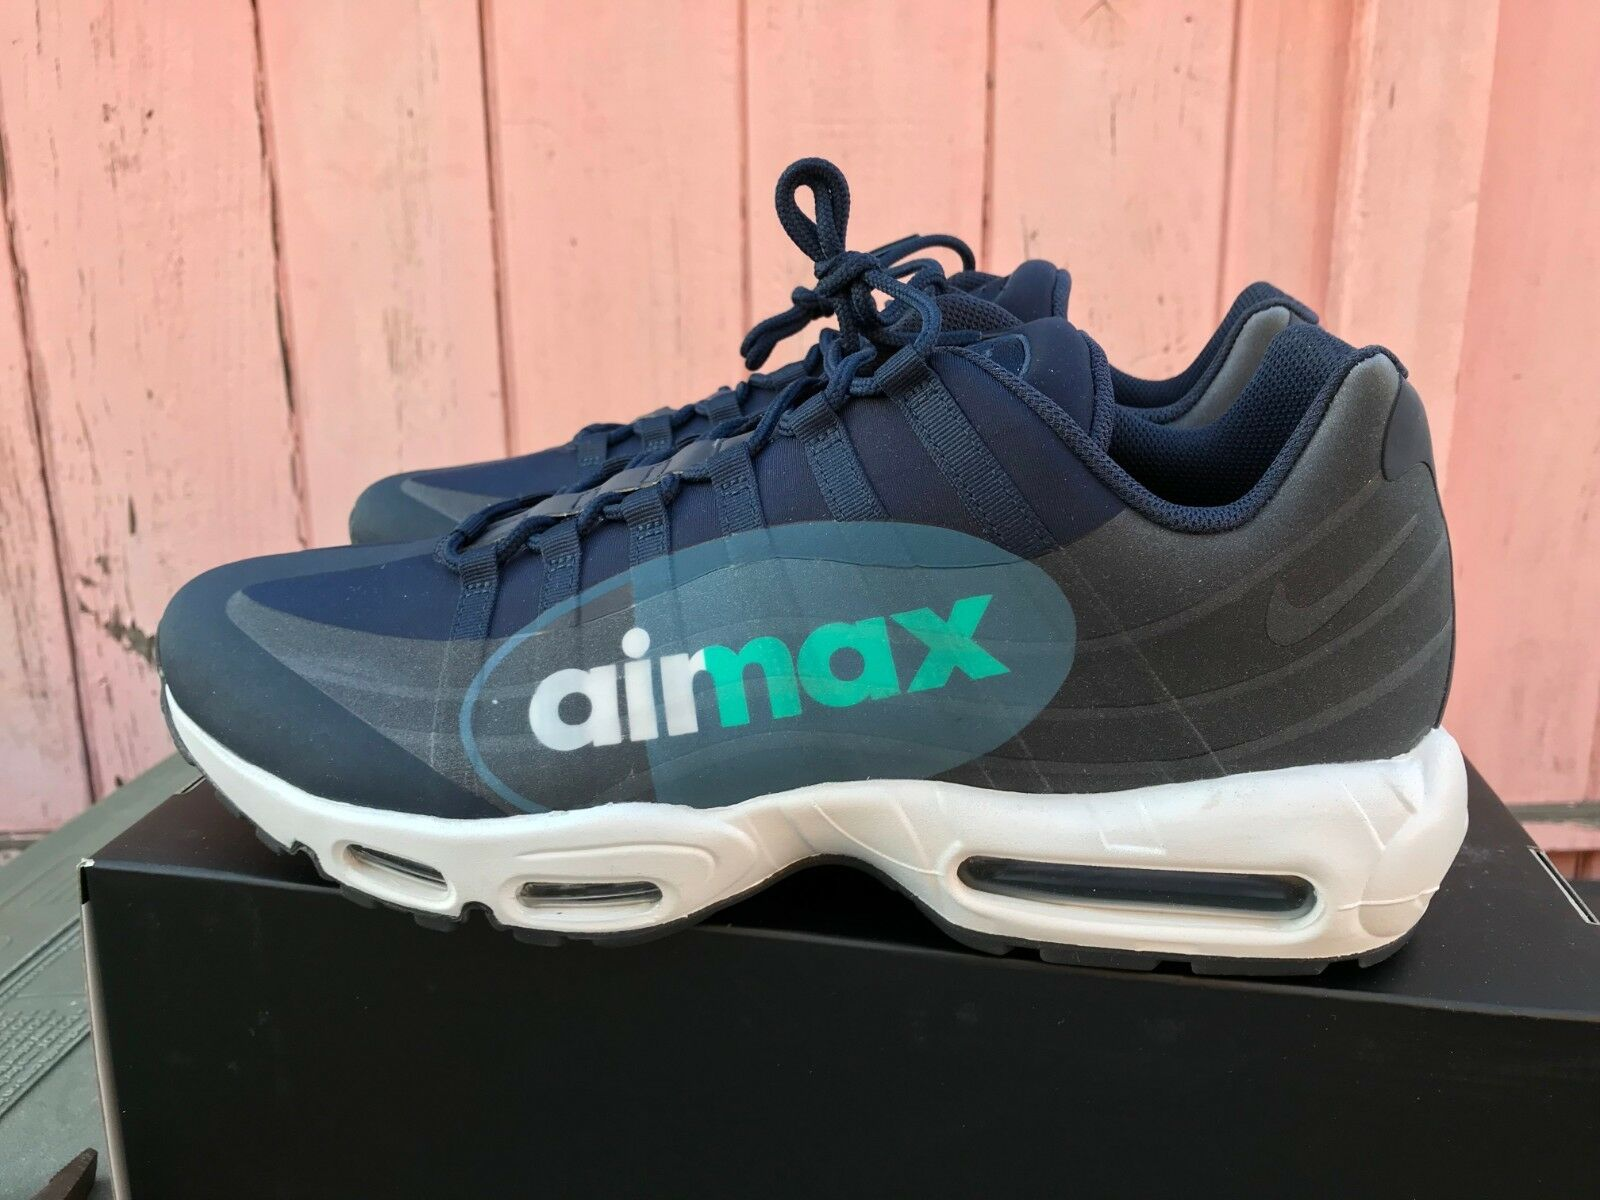 NEW Nike Air Max 95 NS GPX SP shoes Obsidian Sneakers AJ7183 400 Size 14 Running